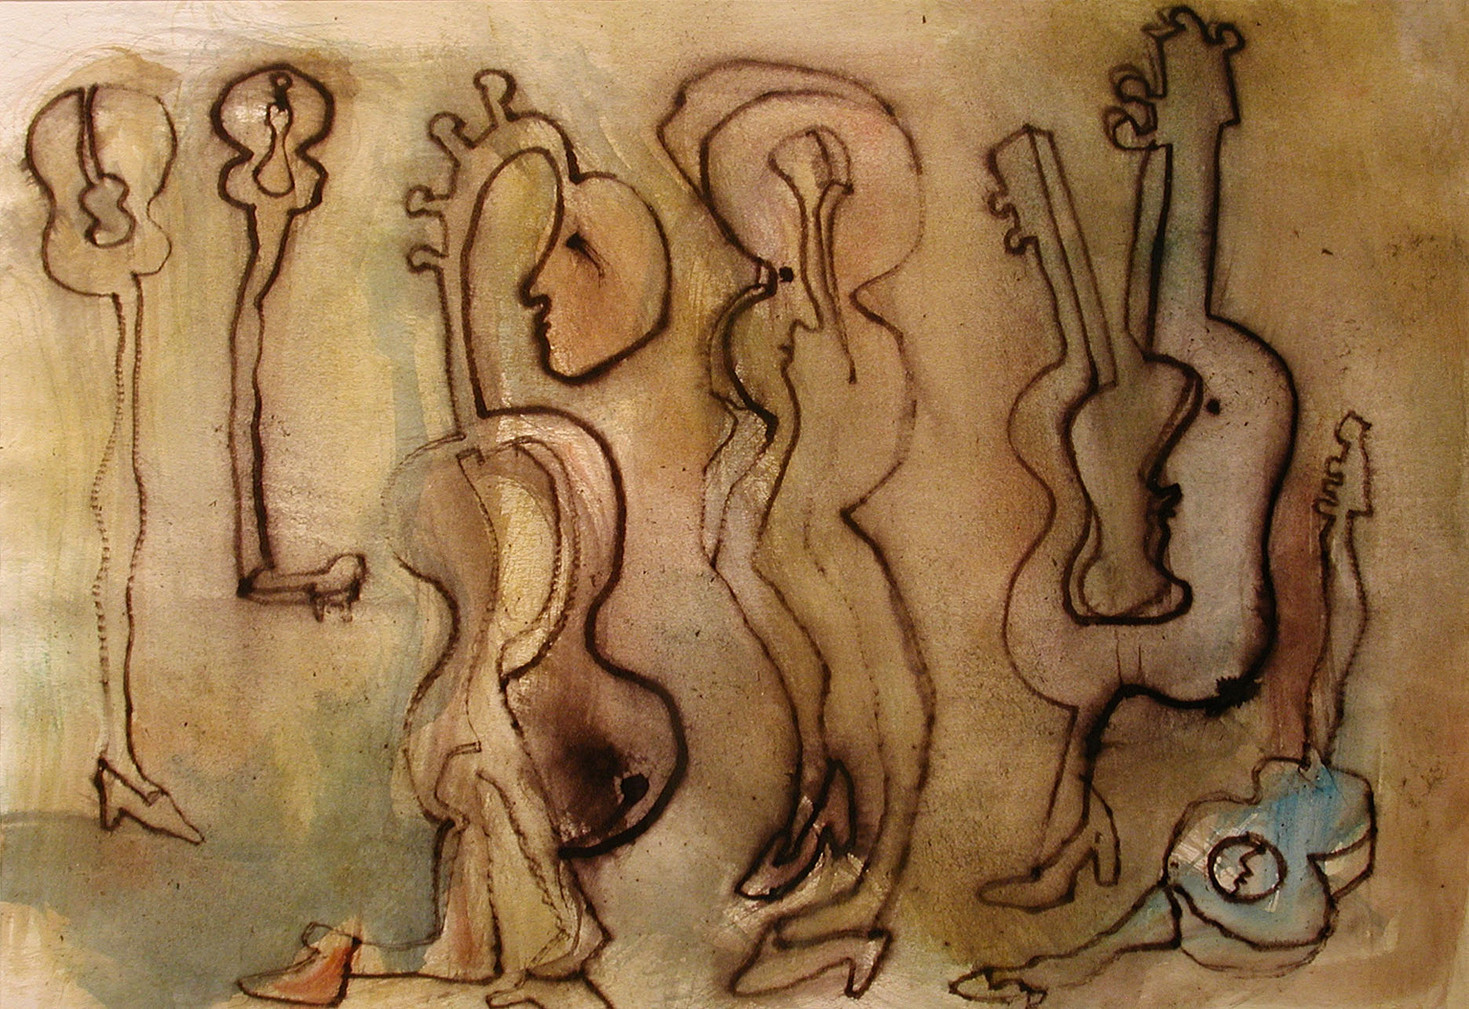 04_Guitar People, 2001, Aquarell u. Tint